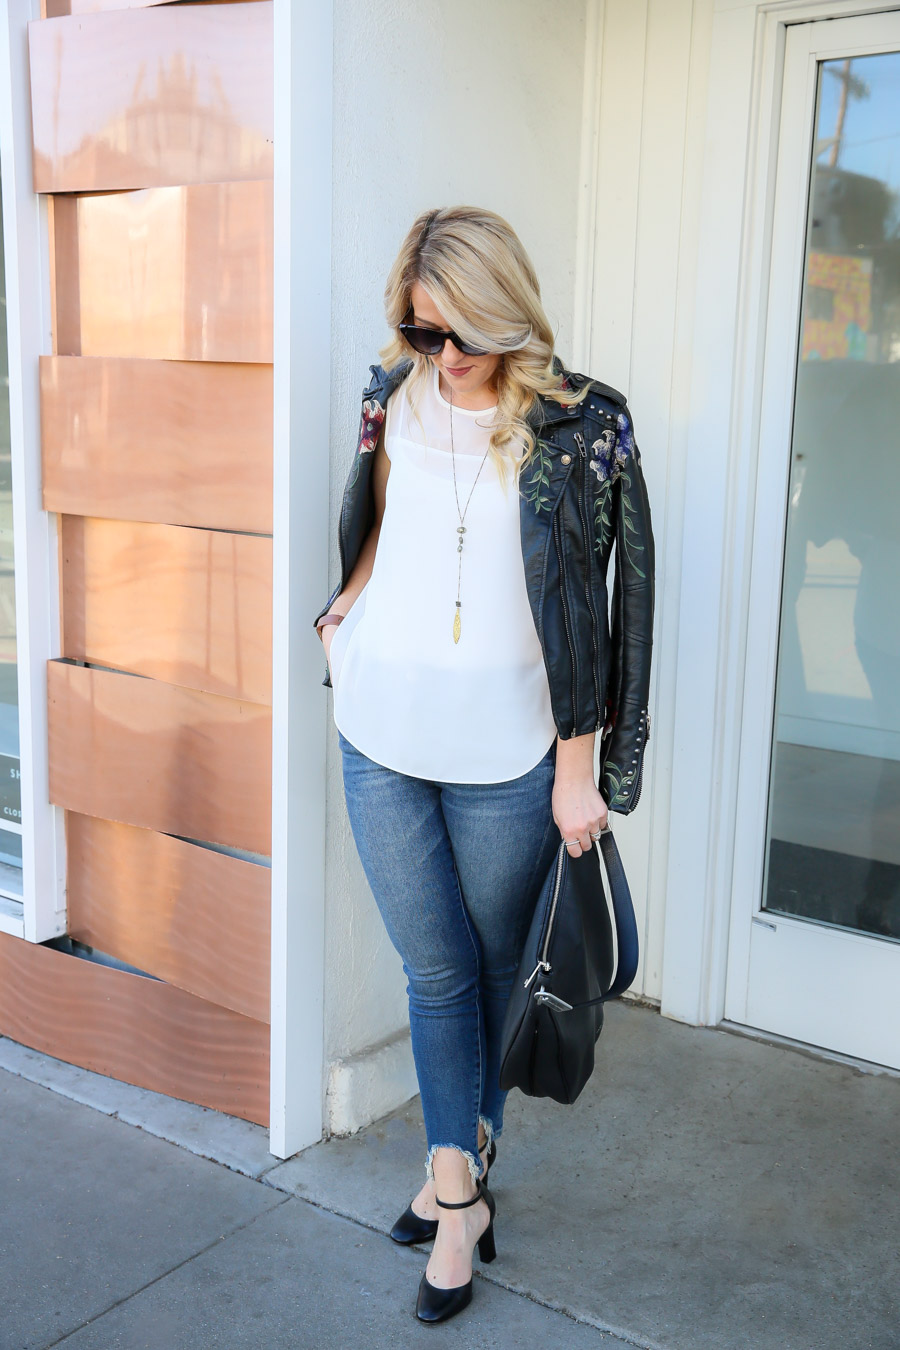 Last Minute Date Night Embroidered Leather Jacket Outfit